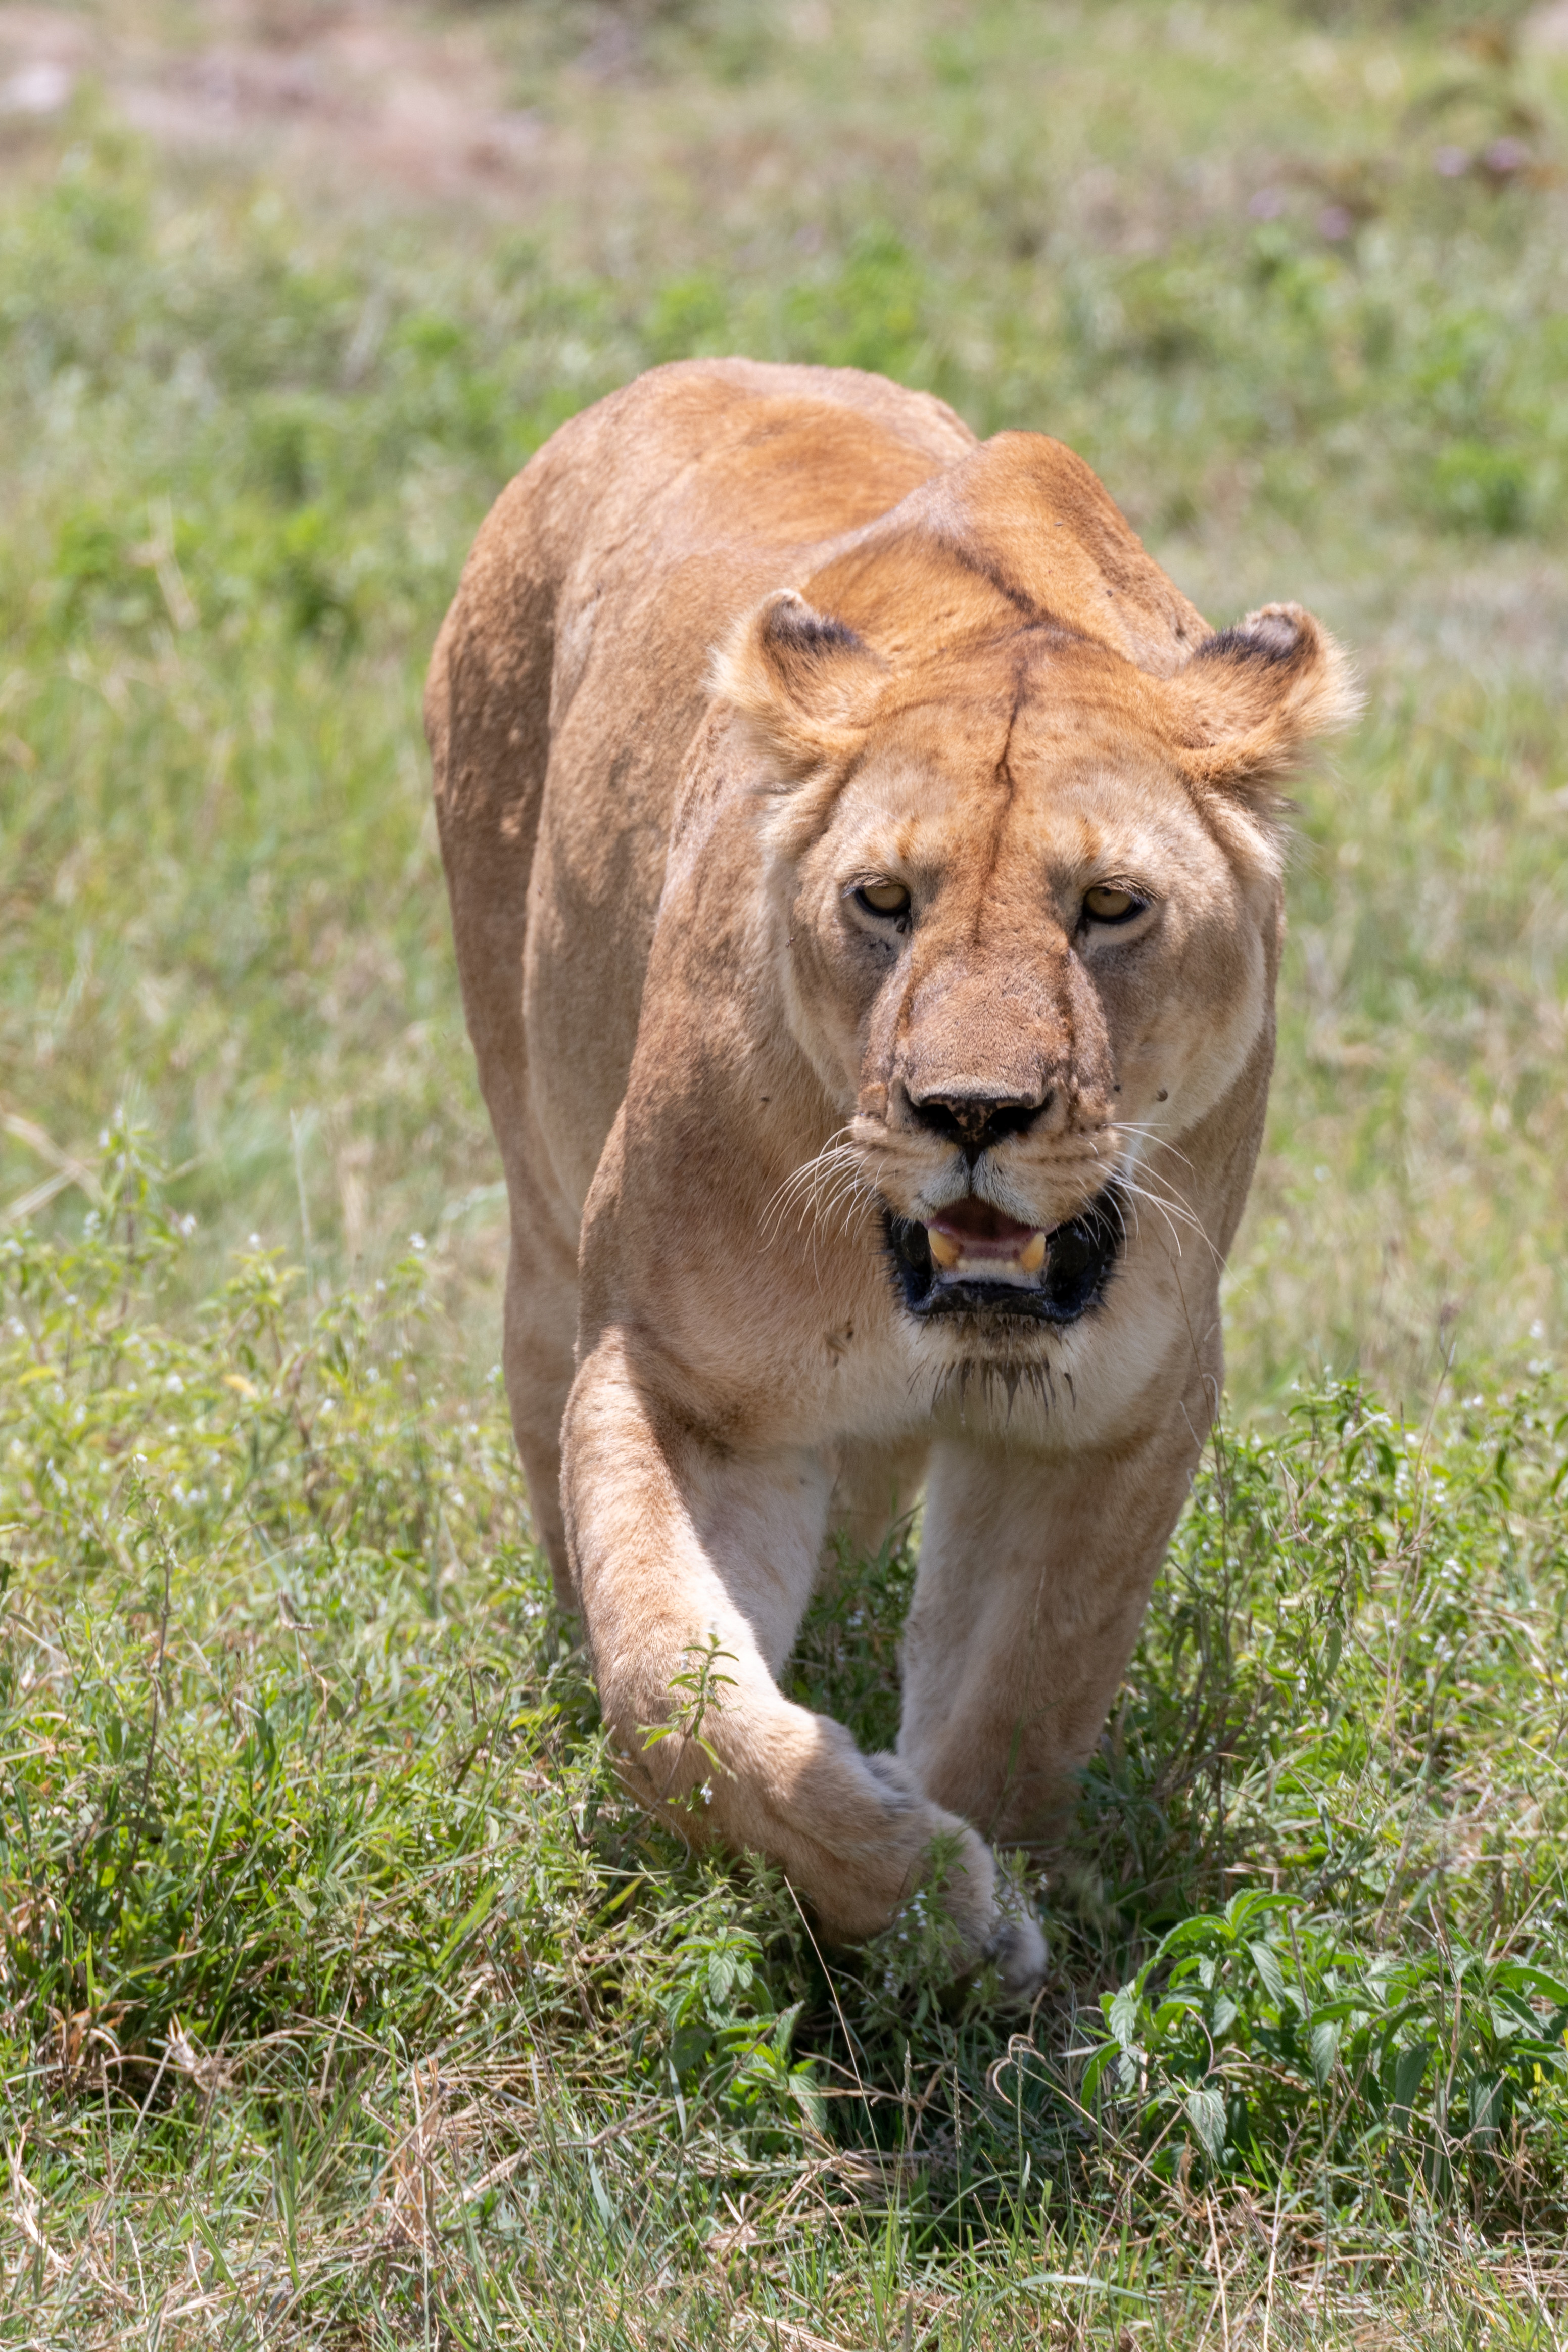 67030 download wallpaper Animals, Lioness, Big Cat, Predator, Grass, To Fall, Mouth screensavers and pictures for free